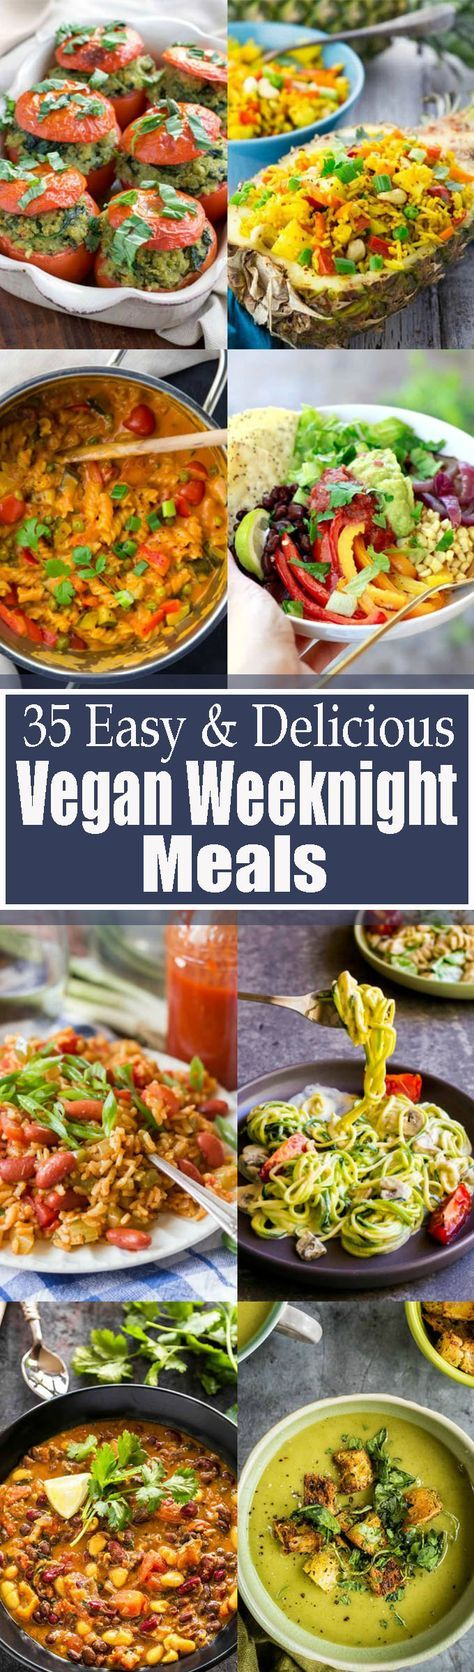 If you're looking for quick and easy vegan dinner recipes, this roundup of 35 easy vegan weeknight meals will be perfect for you! It includes vegan pasta, vegan curries, vegan one pot meals, vegan soups and sooo much more!